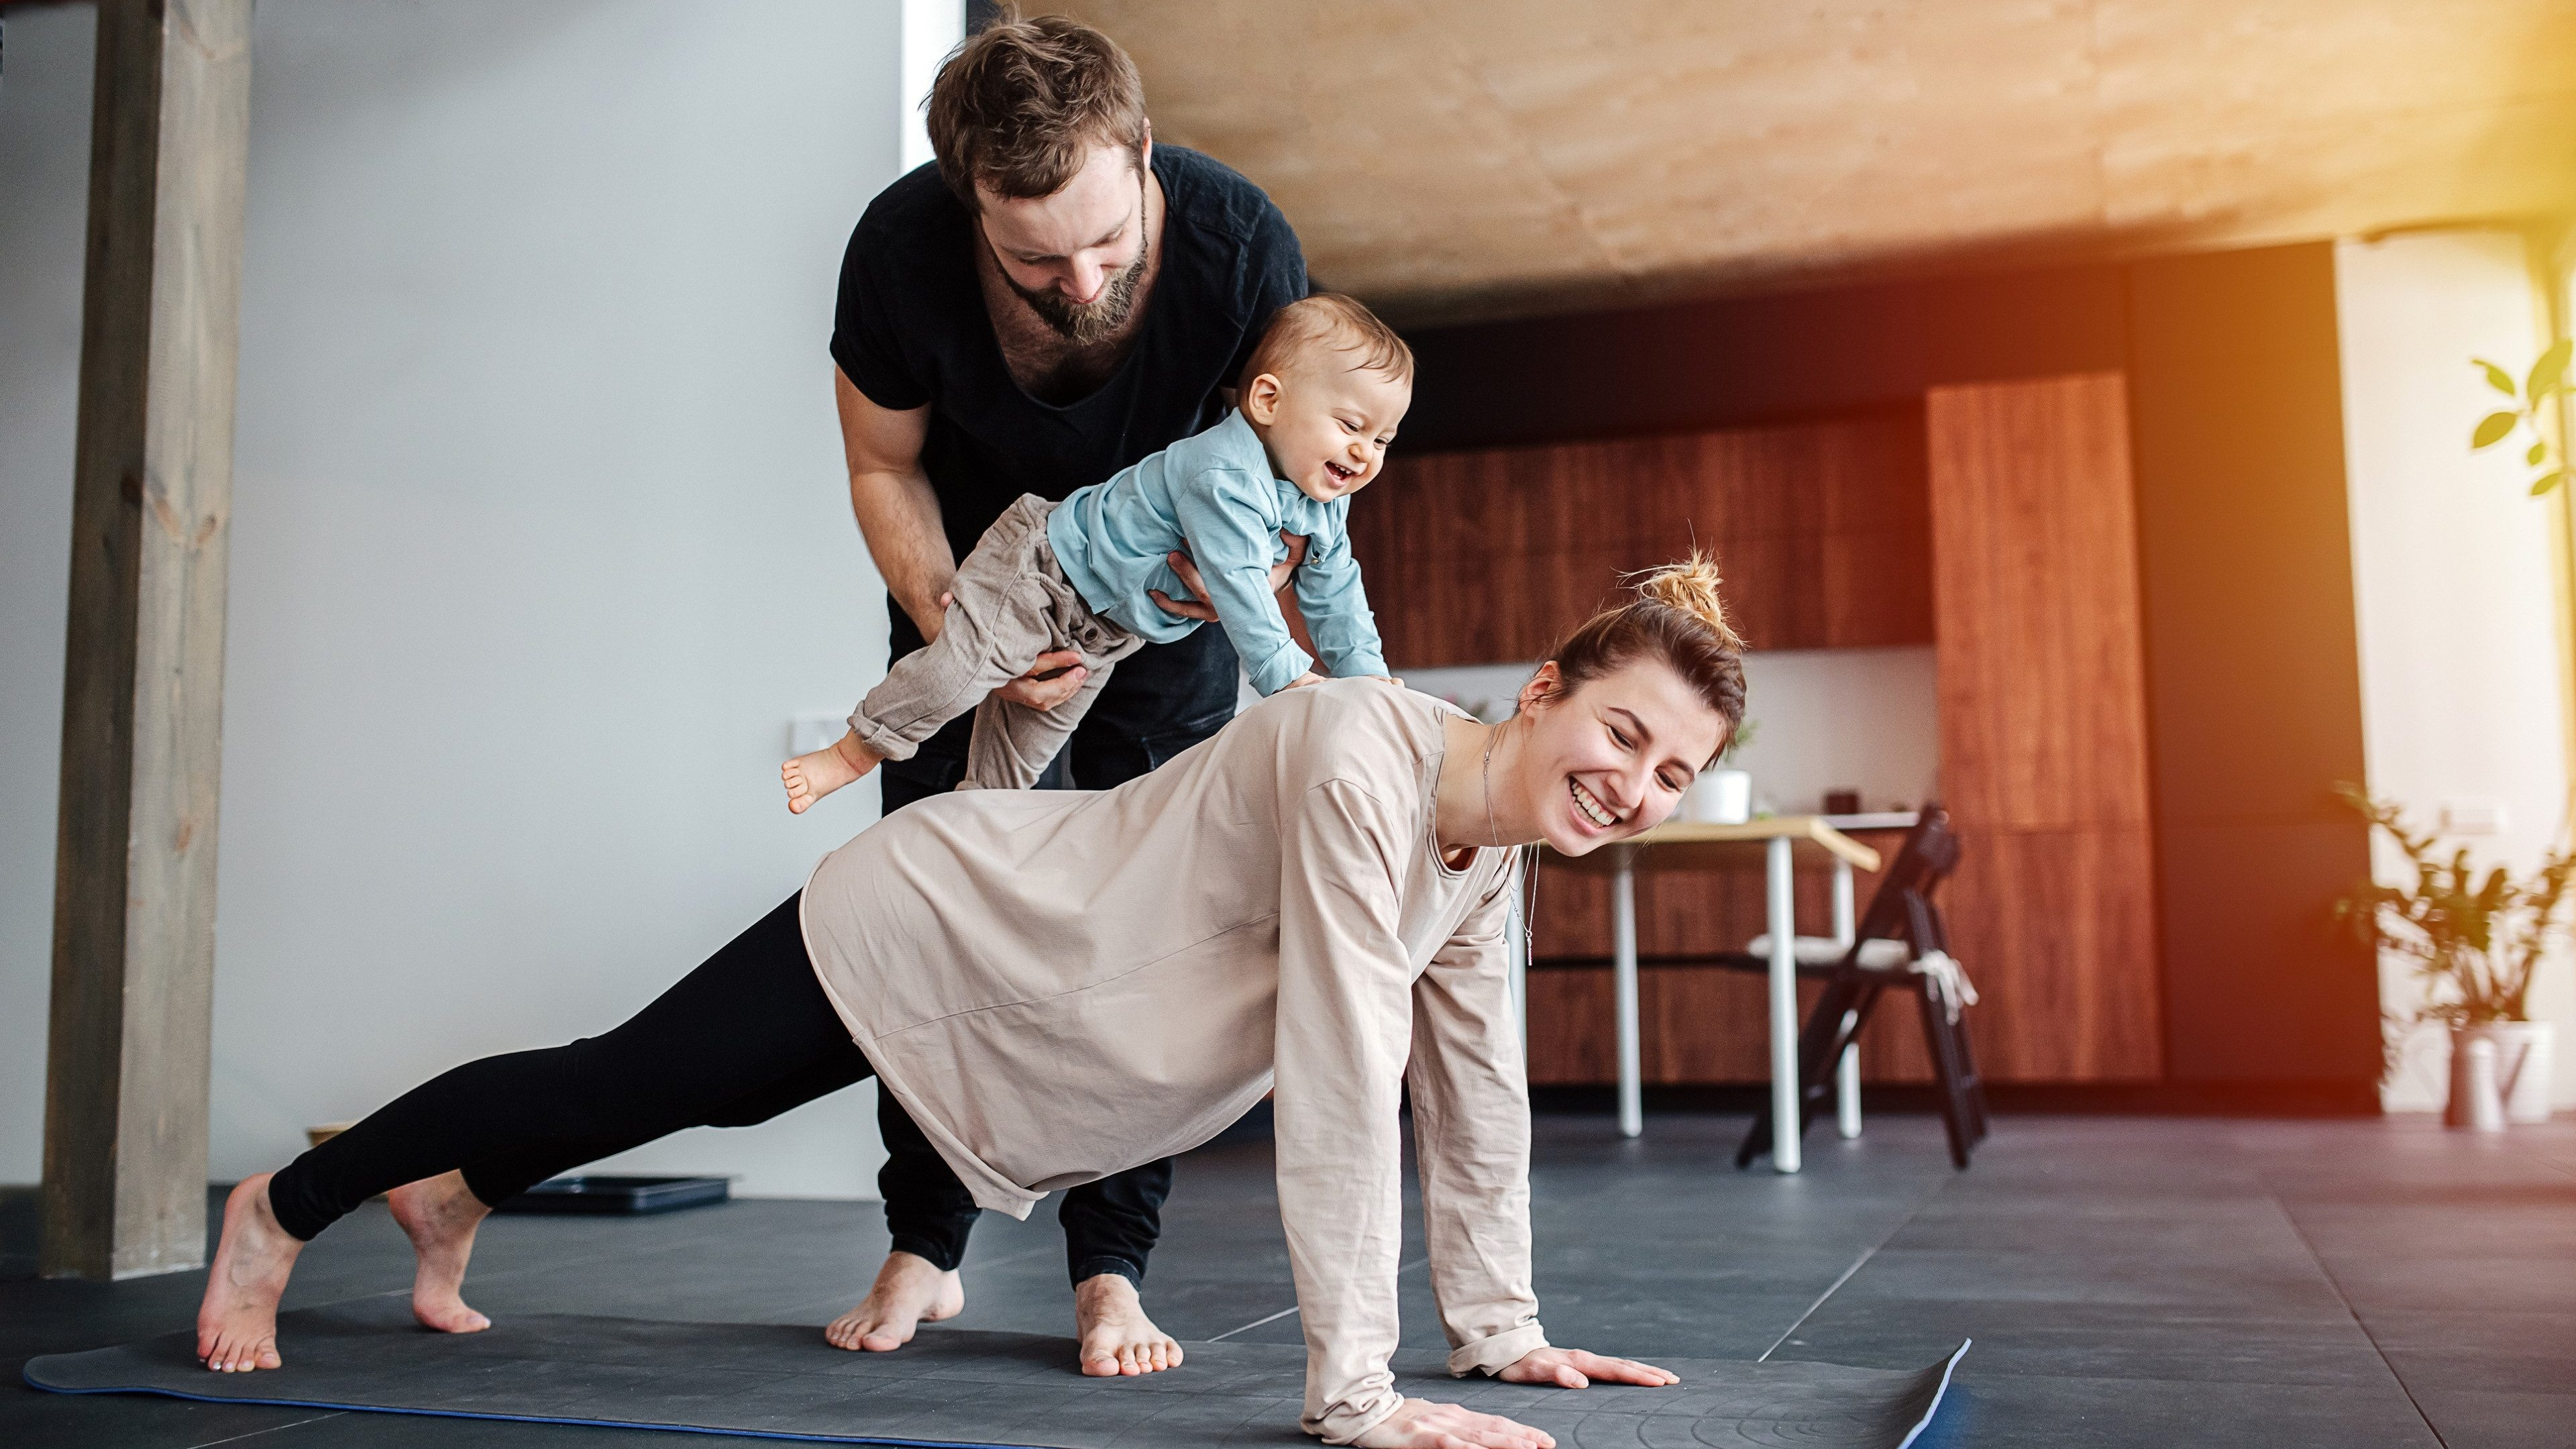 Family morning exercise. Mother doing plank, father holding their baby on her back, so he would ride her, including child in activity. Family quarantine, domestic life in self-isolation. Sunset light from the windows.